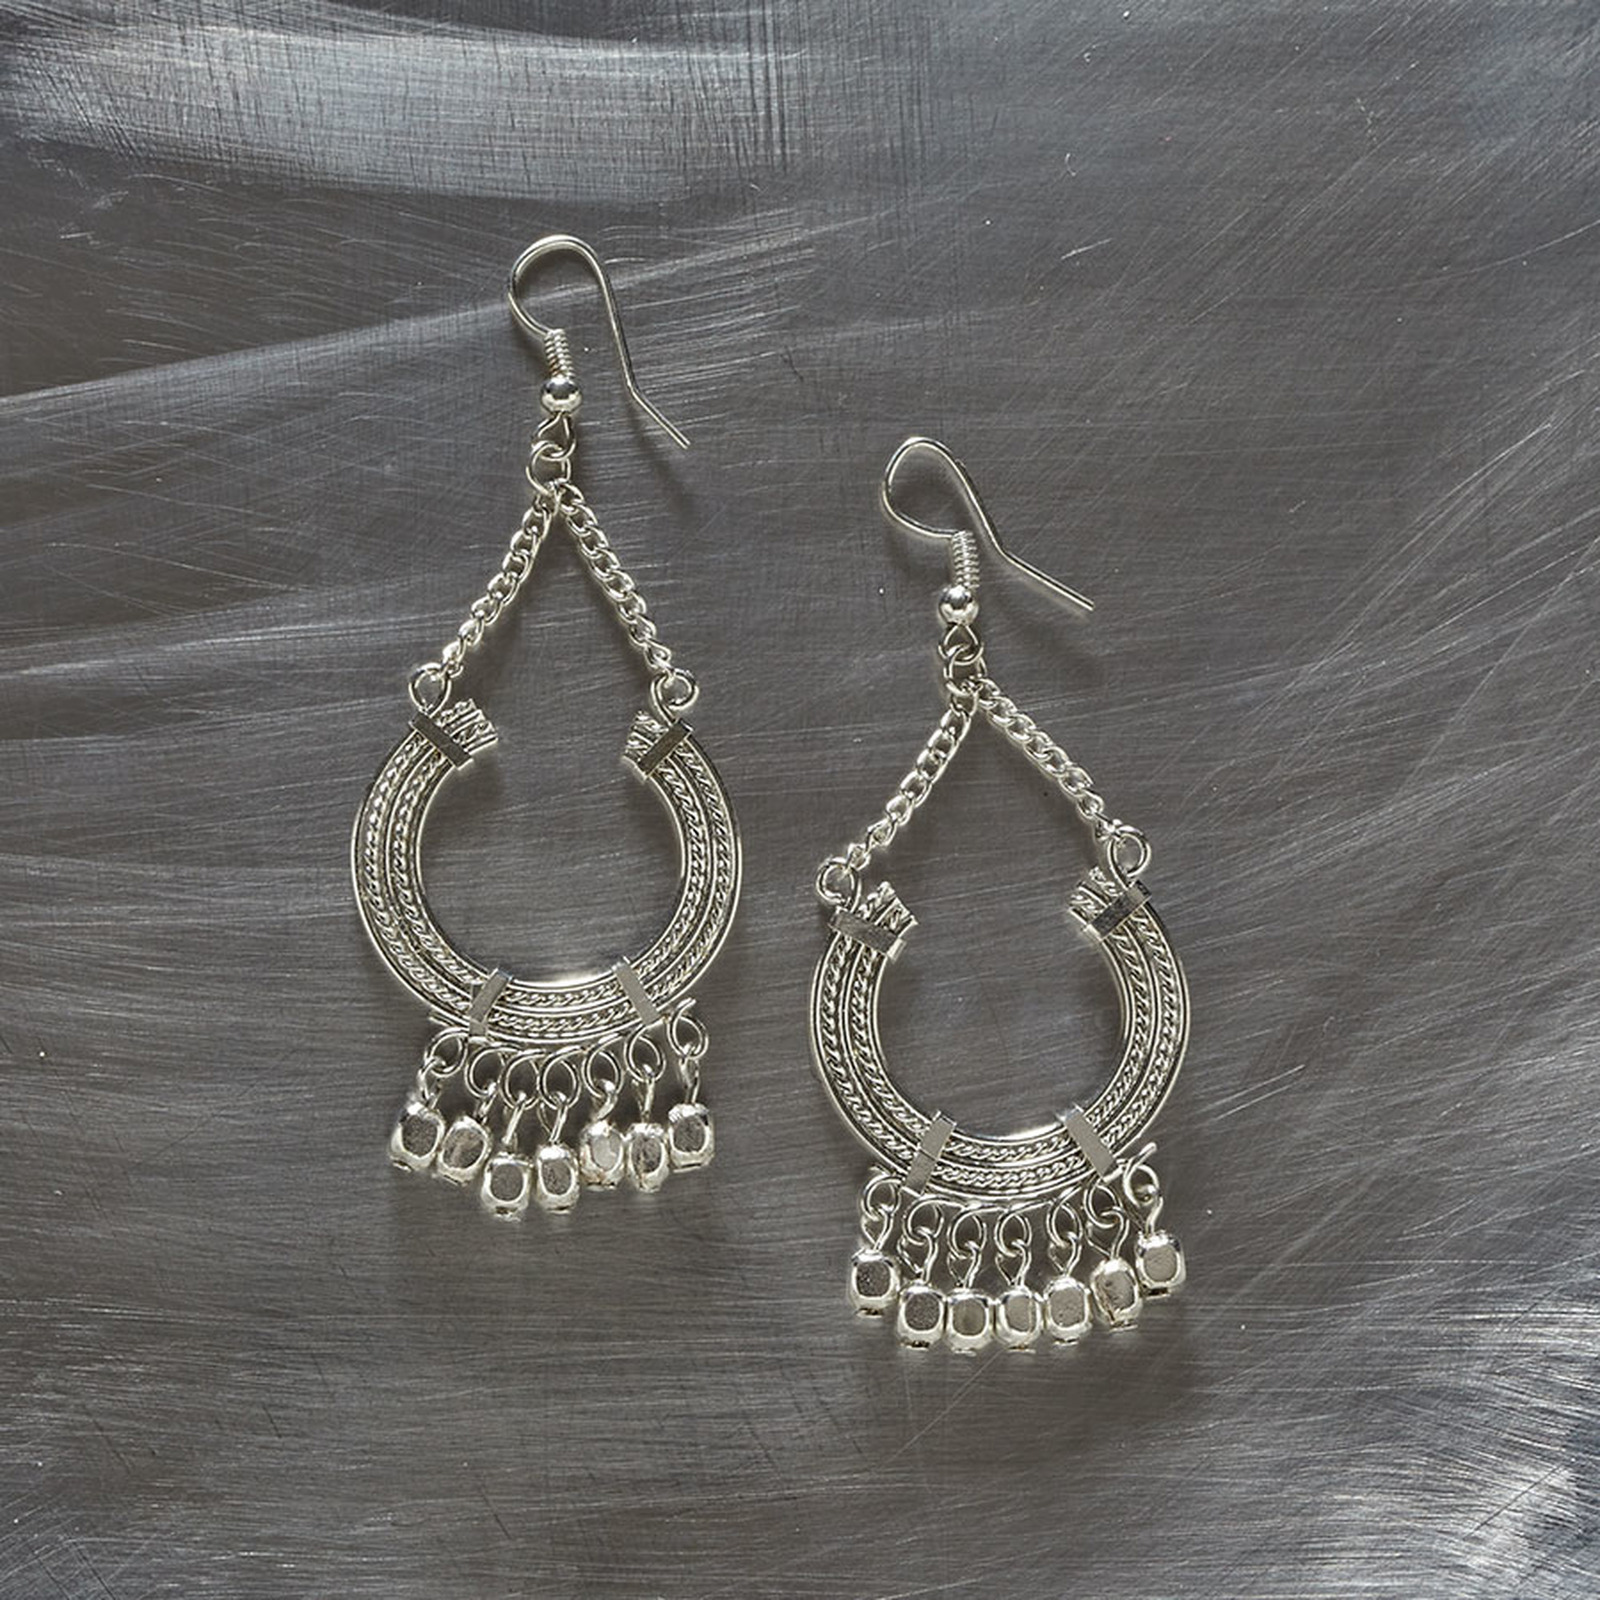 Unique global inspired silver U shaped earrings